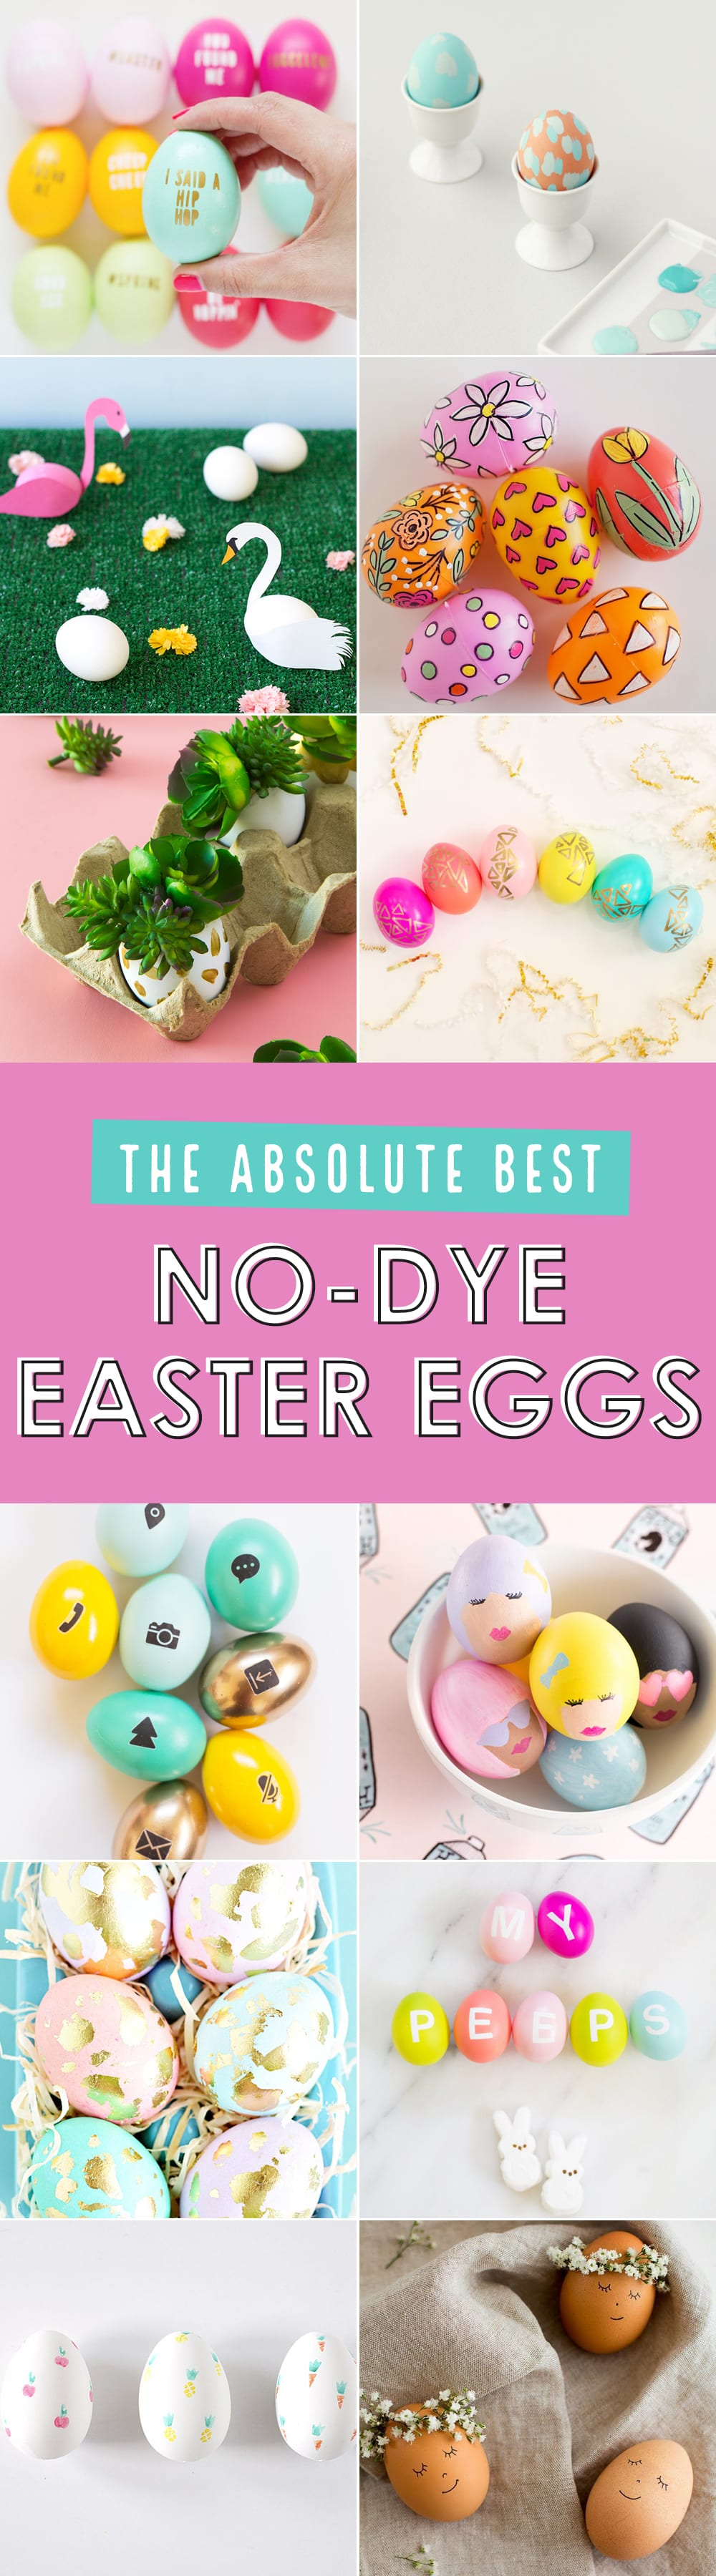 Absolute best no-dye Easter egg ideas